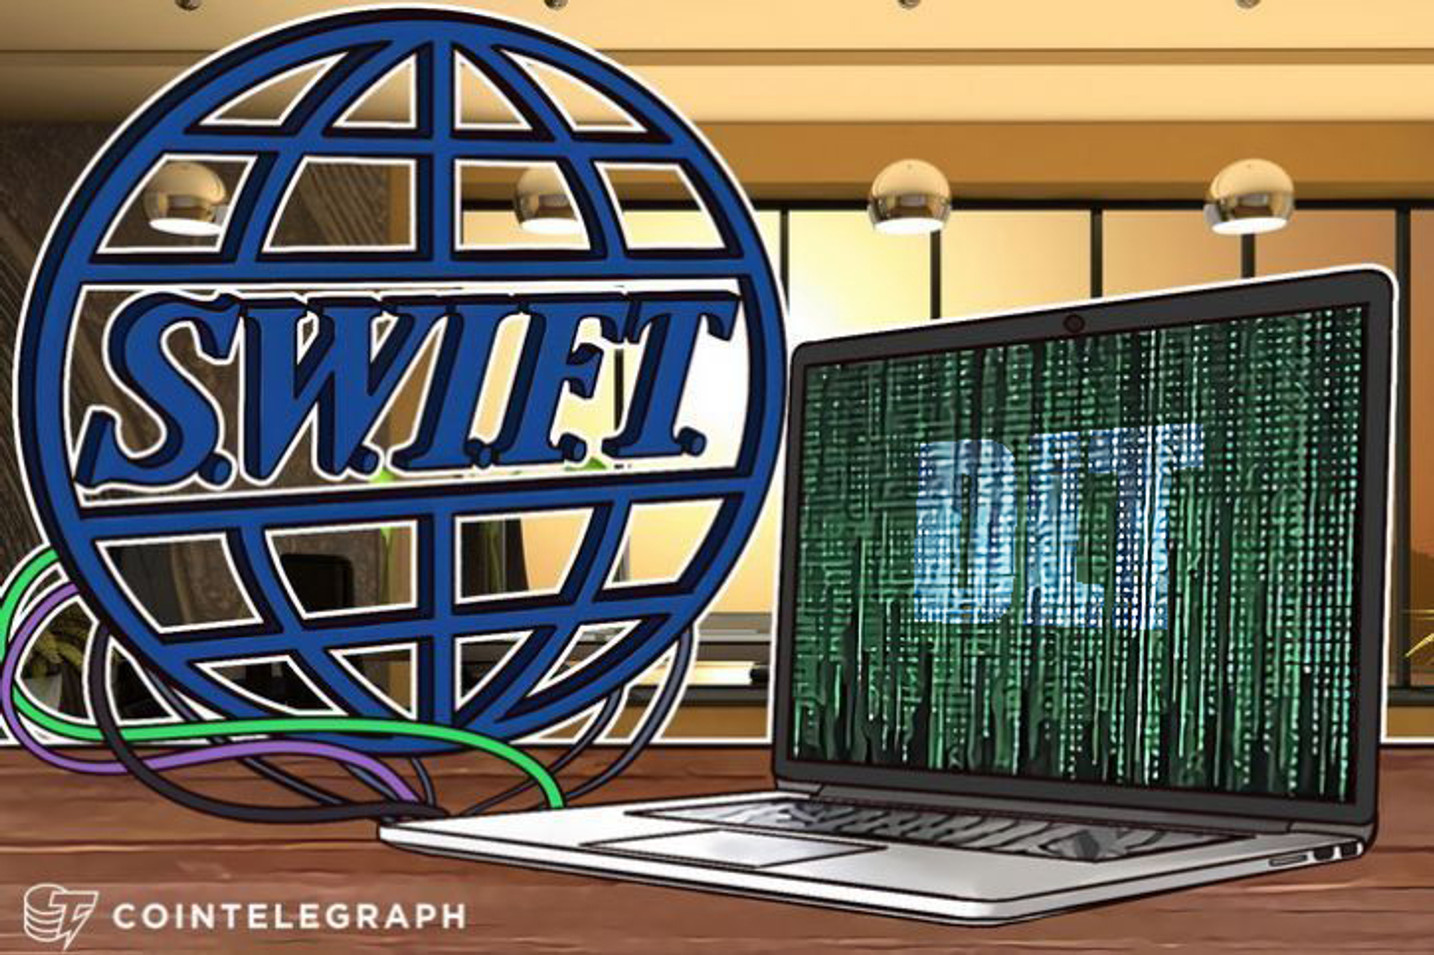 SWIFT's Blockchain Pilot For Bank-To-Bank Transfers Went 'Extremely Well'